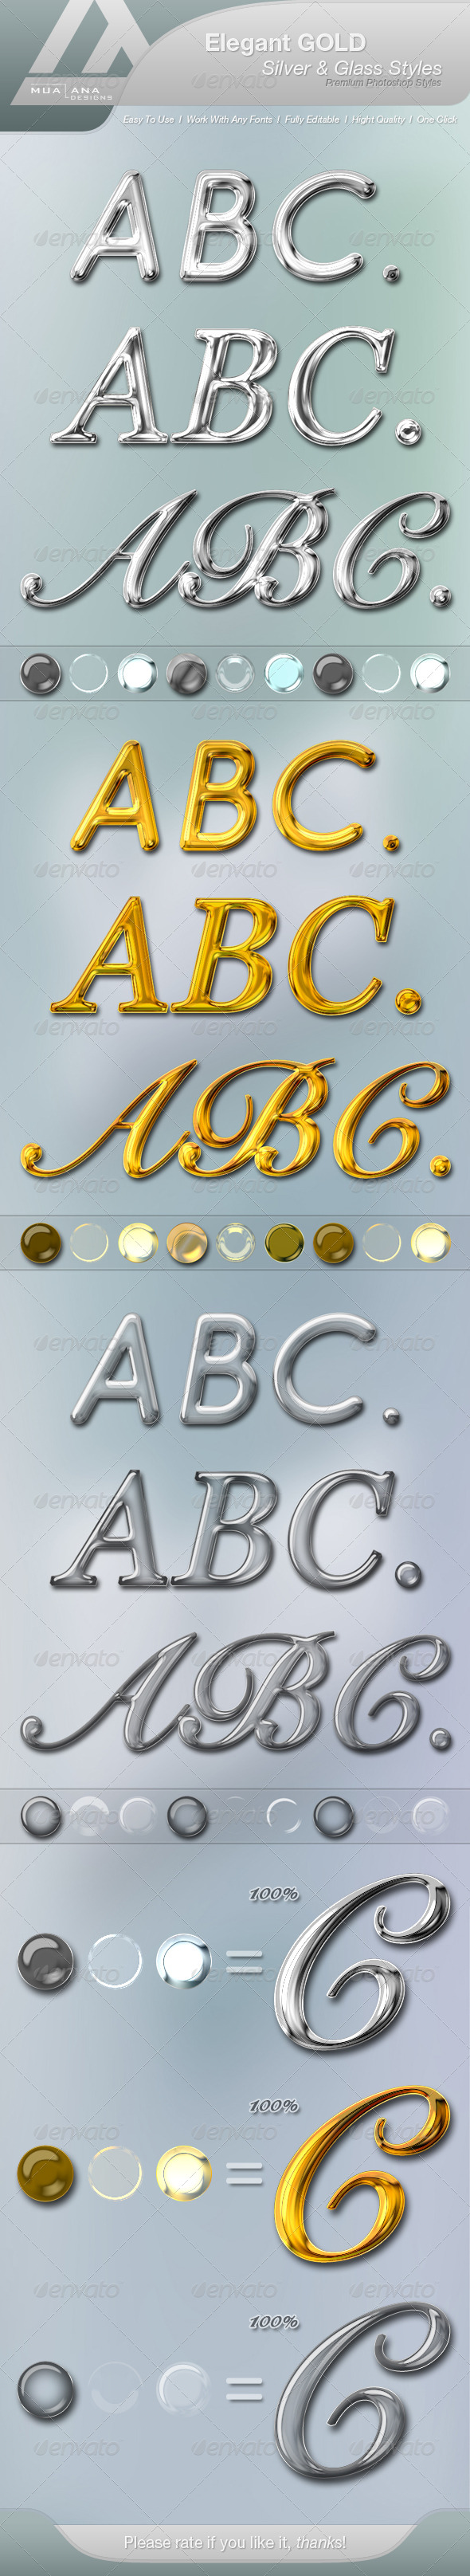 GraphicRiver Elegant Gold Silver & Glass Styles 7705345